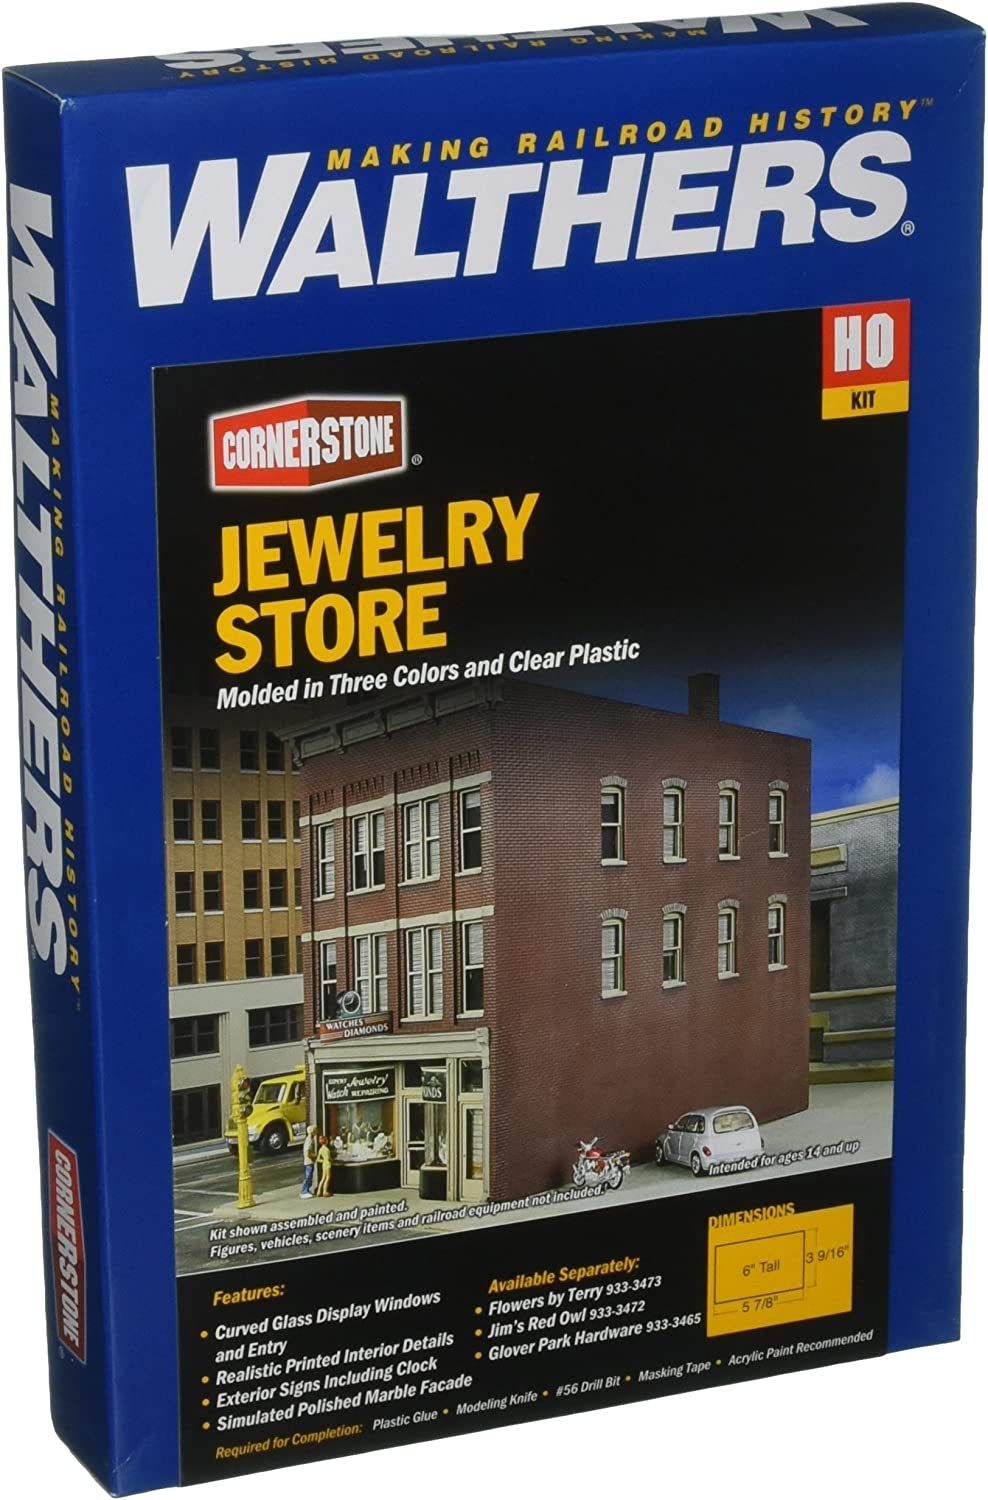 Walthers Inc. Jewelry Store Kit, 39 16 X 57 8 X 6  9.1 X 14.9 X 15.2cm